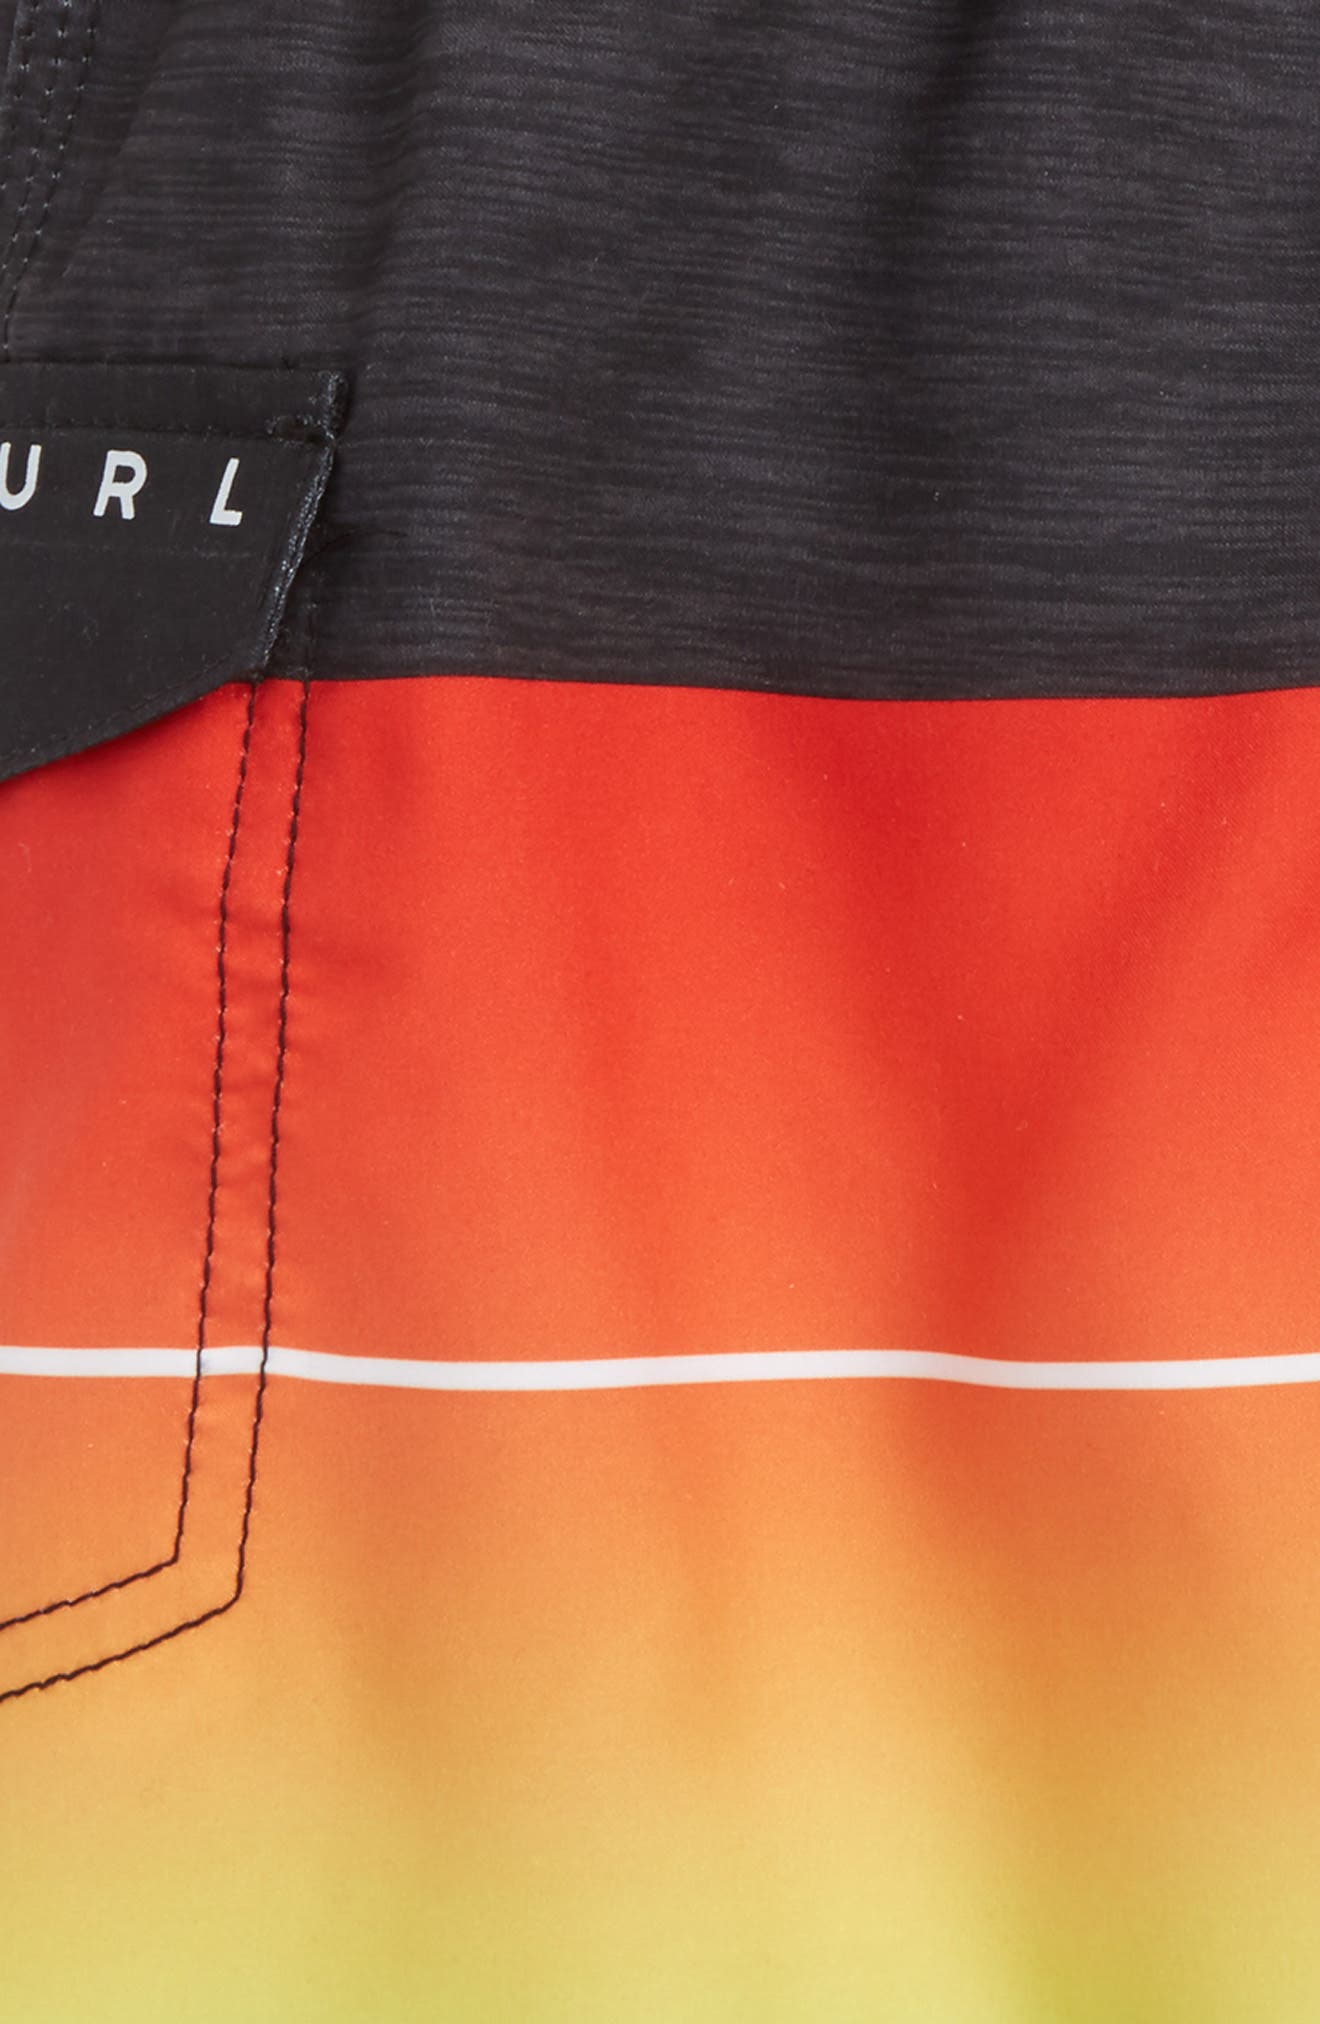 Mirage Eclipse Volley Shorts,                             Alternate thumbnail 2, color,                             001